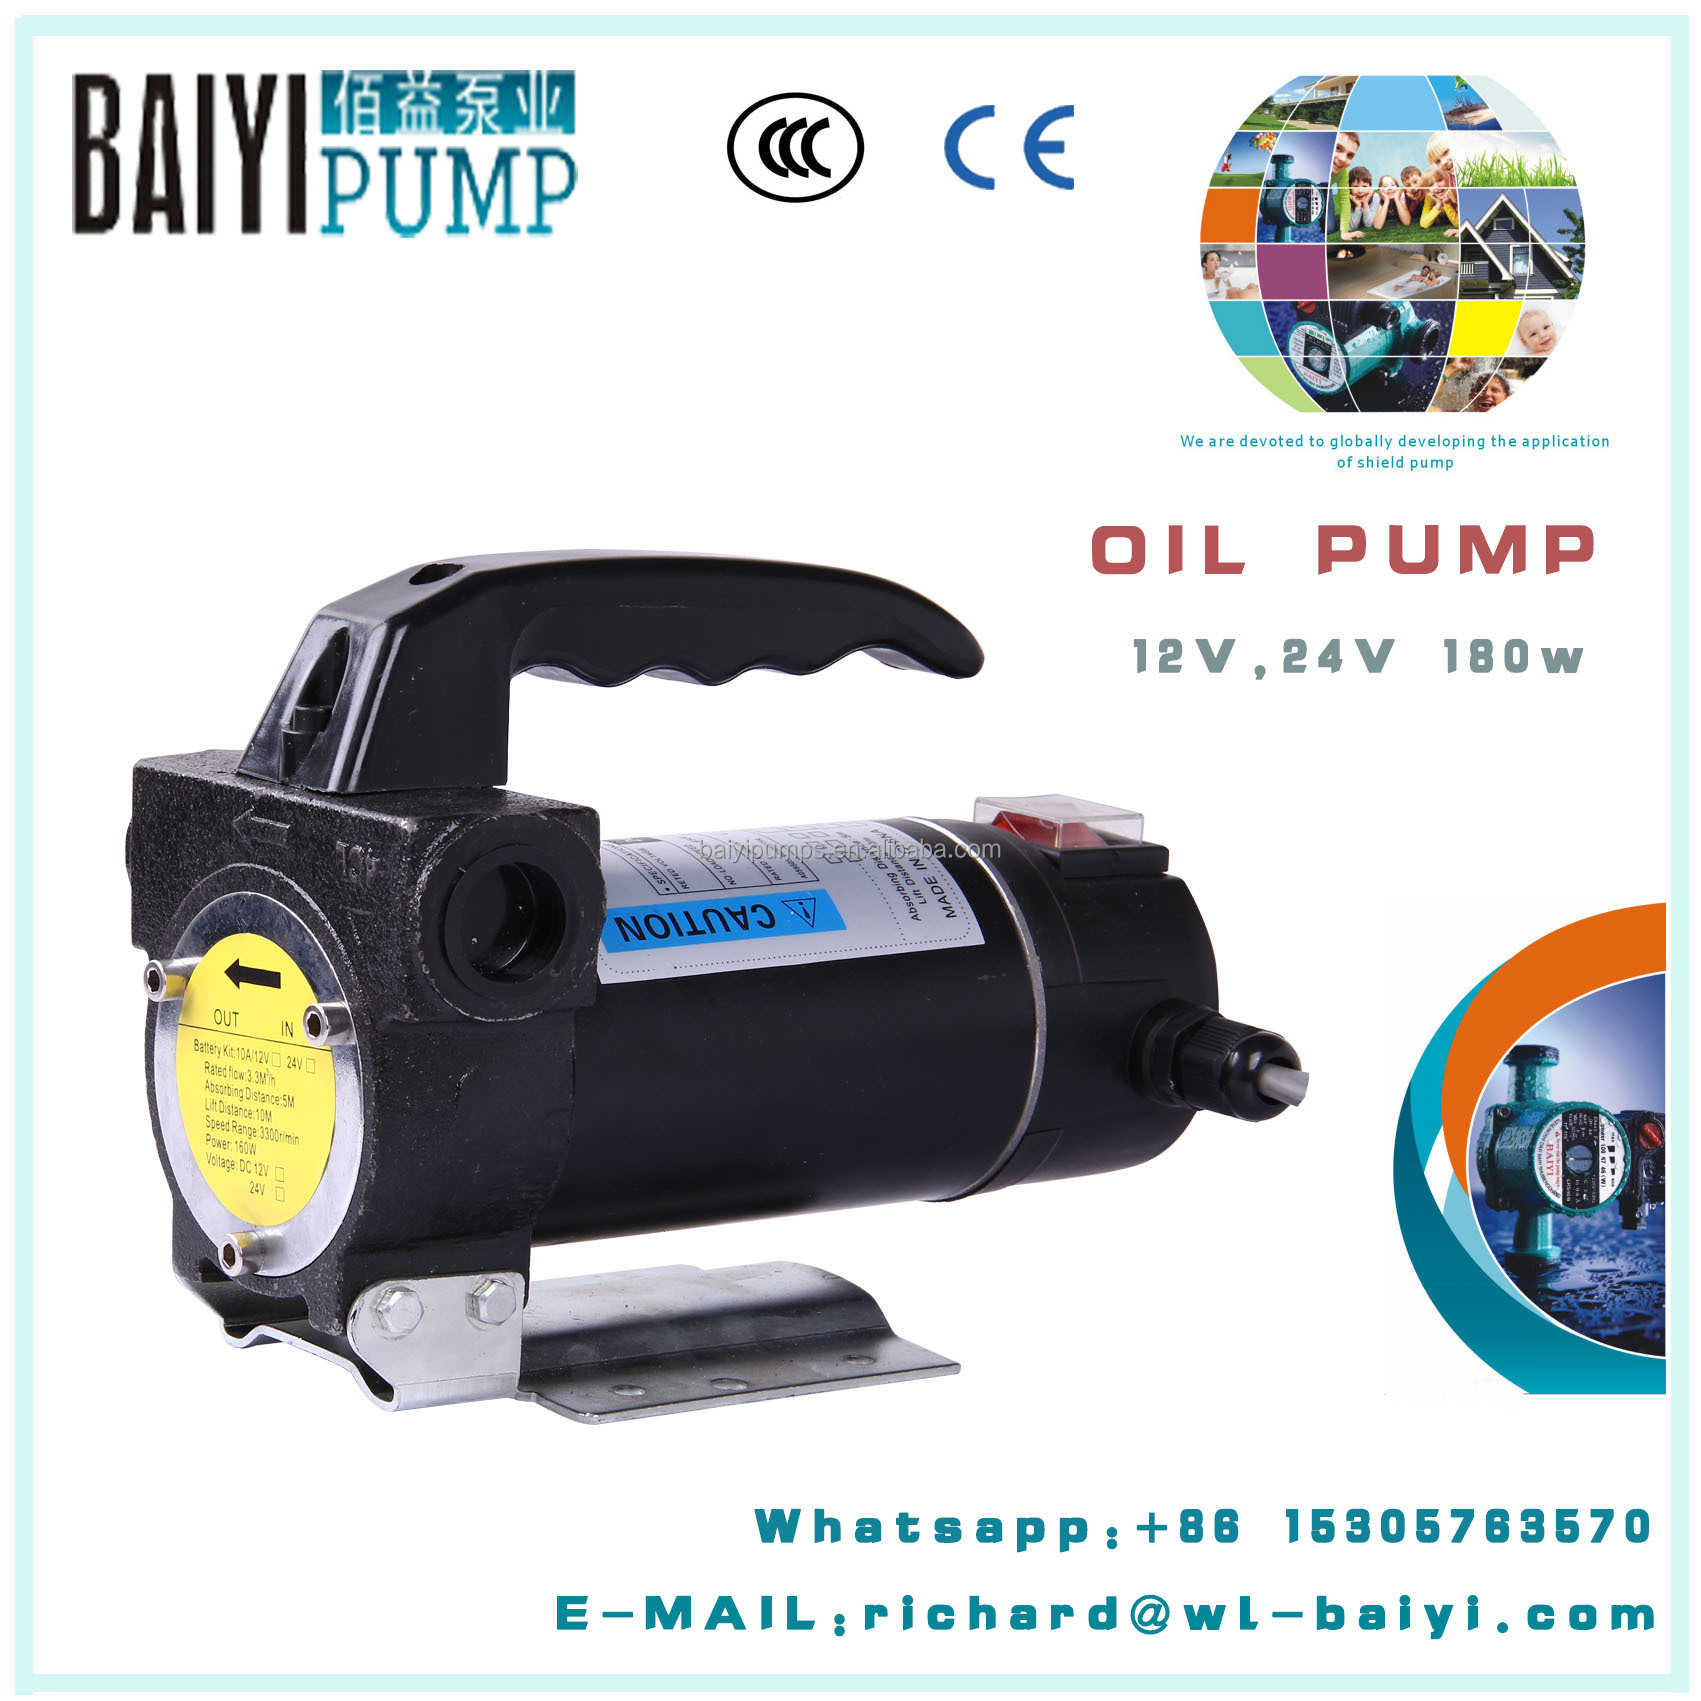 Quality oil pump tractor 5 years warranty